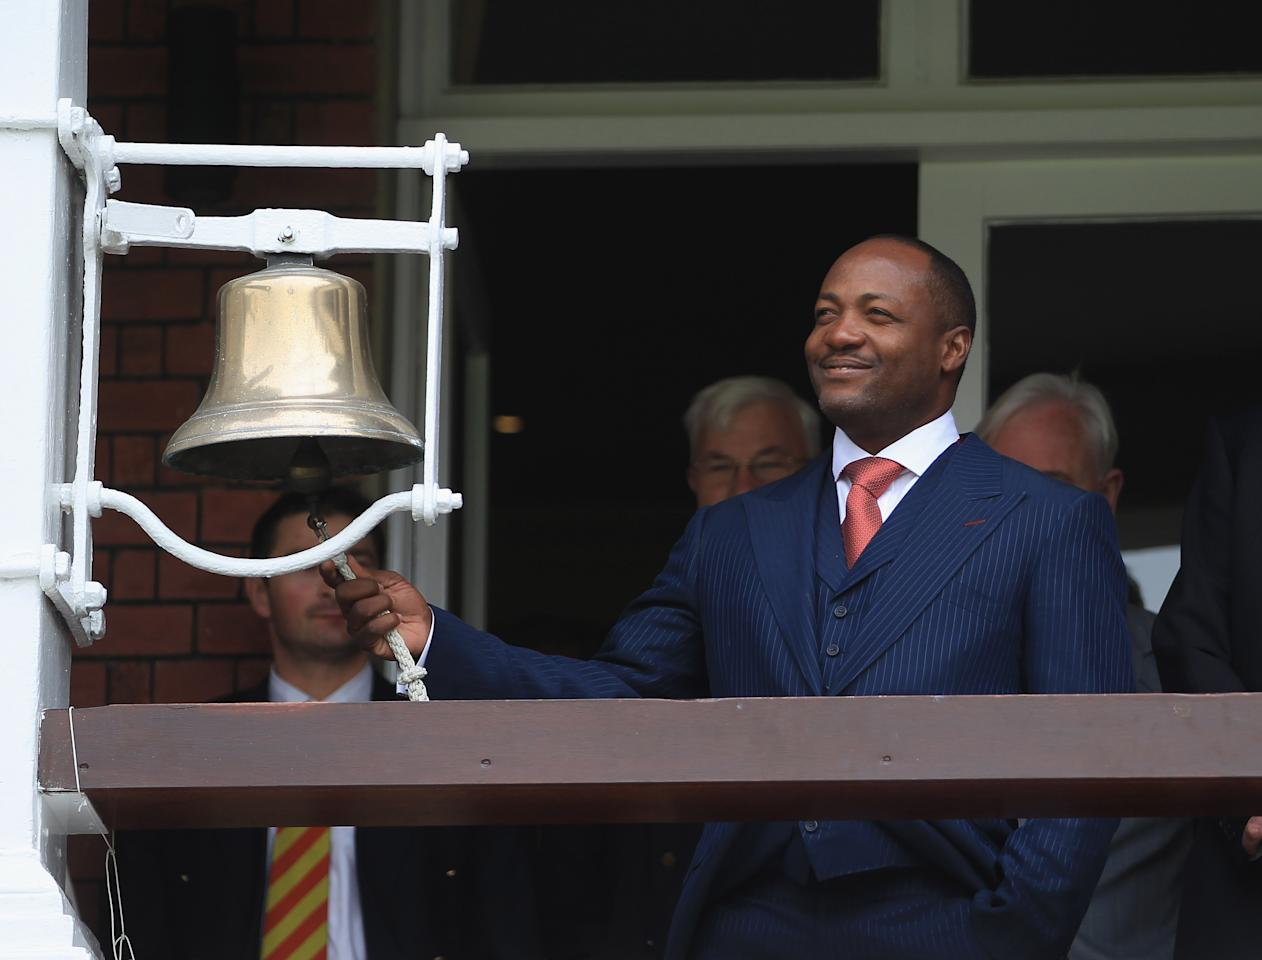 LONDON, ENGLAND - MAY 18:  Brian Lara of the West Indies rings the bell at the start of play during day 2 of the 1st Investec Test Match between England and West Indies at Lord's Cricket Ground on May 18, 2012 in London, England.  (Photo by Tom Shaw/Getty Images)